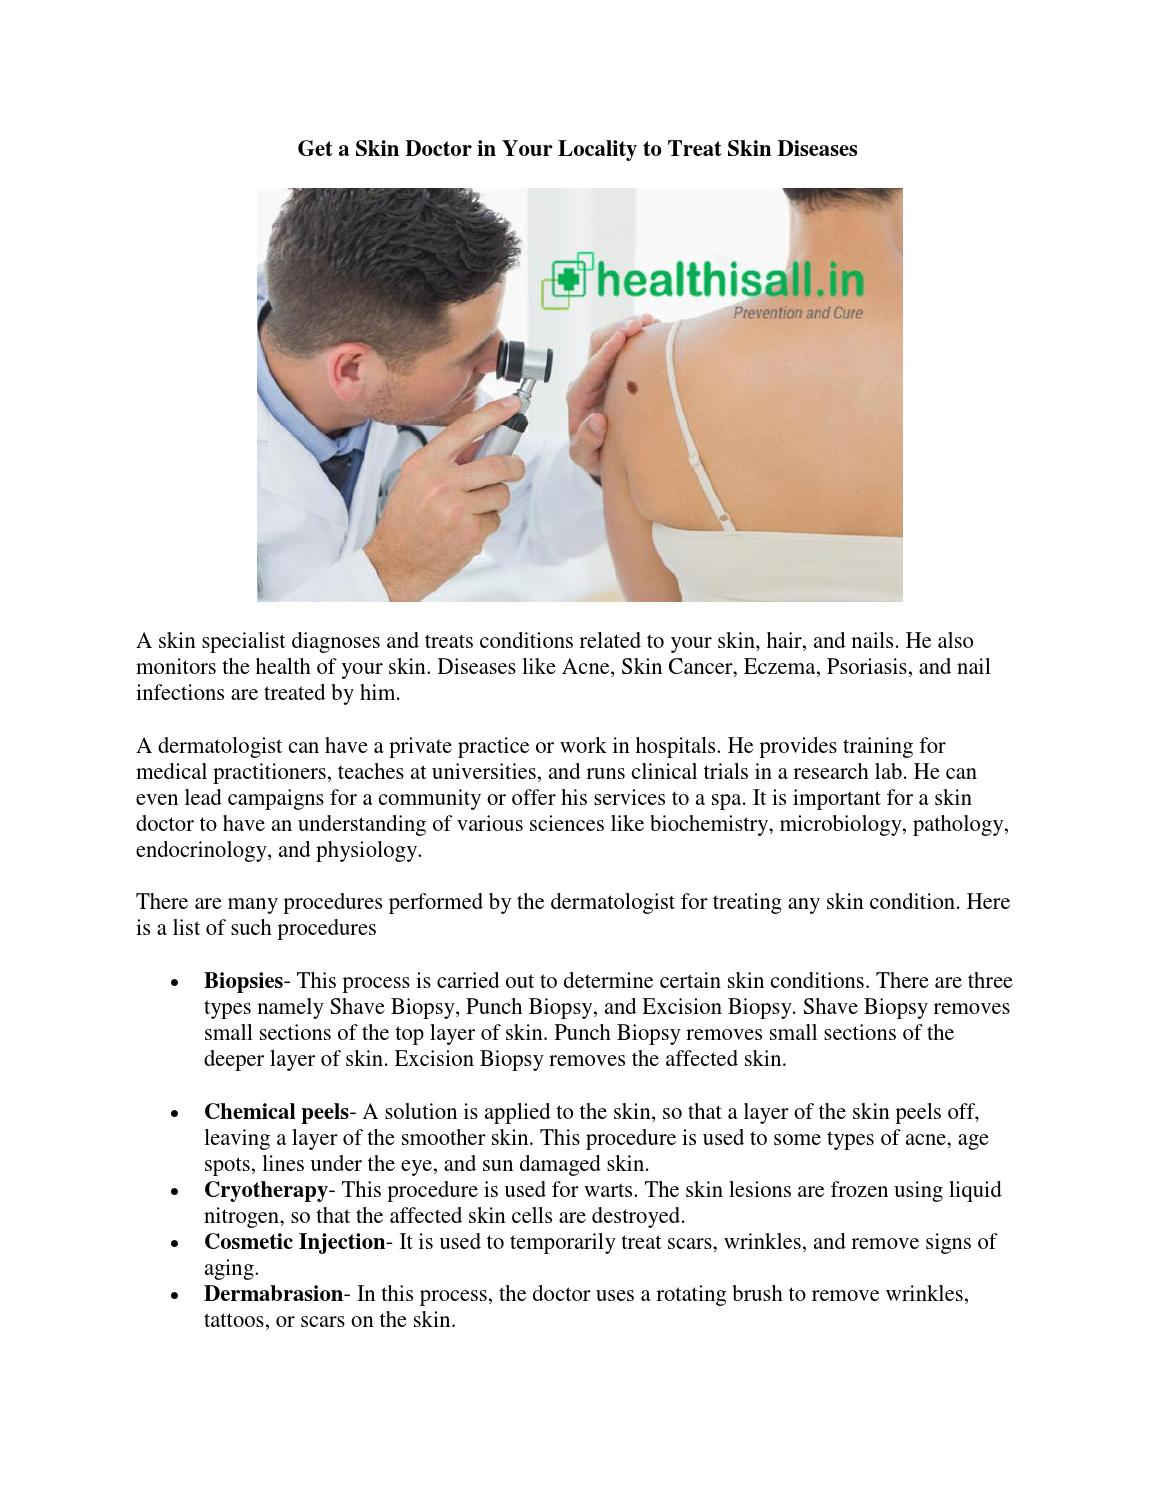 Get a Skin Doctor in Your Locality to Treat Skin Diseases by